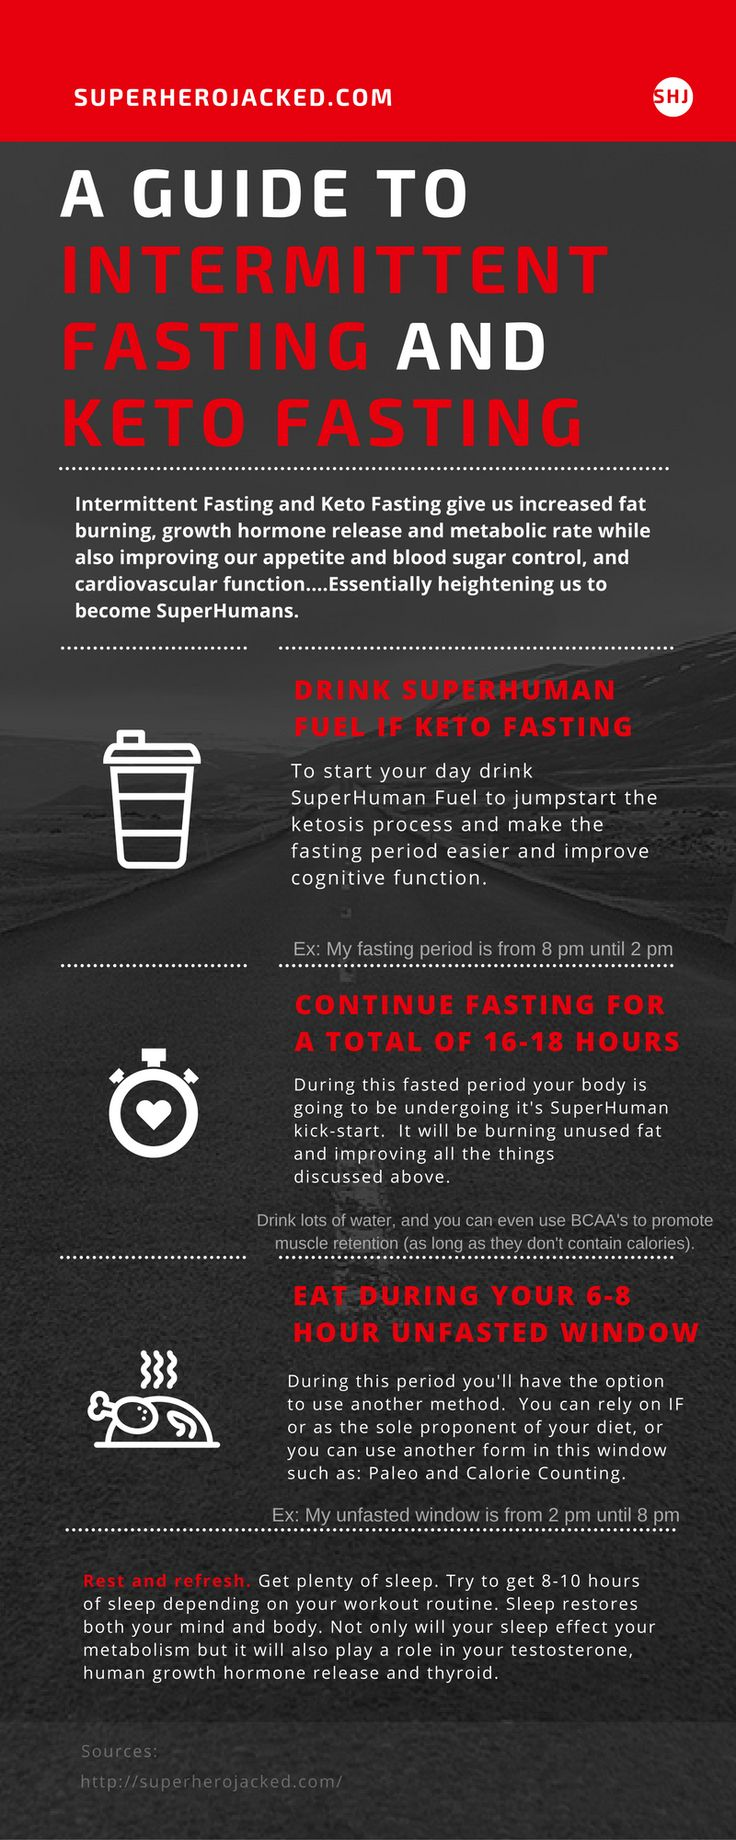 Intermittent fasting: the science of going without